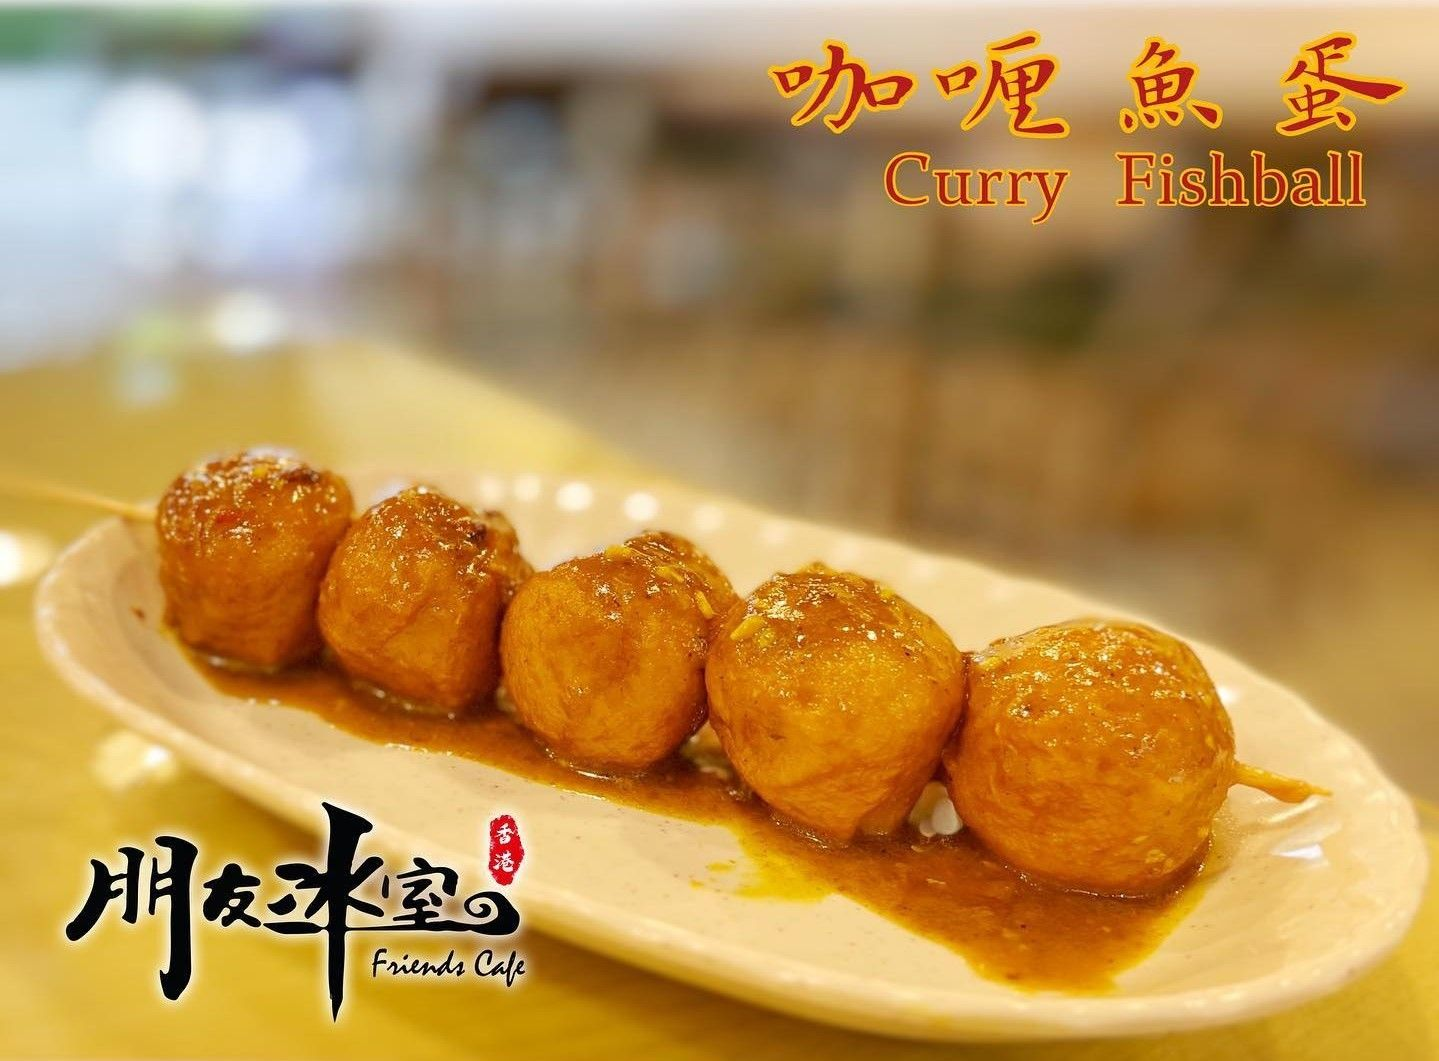 Friends Cafe HK Curry Fishball